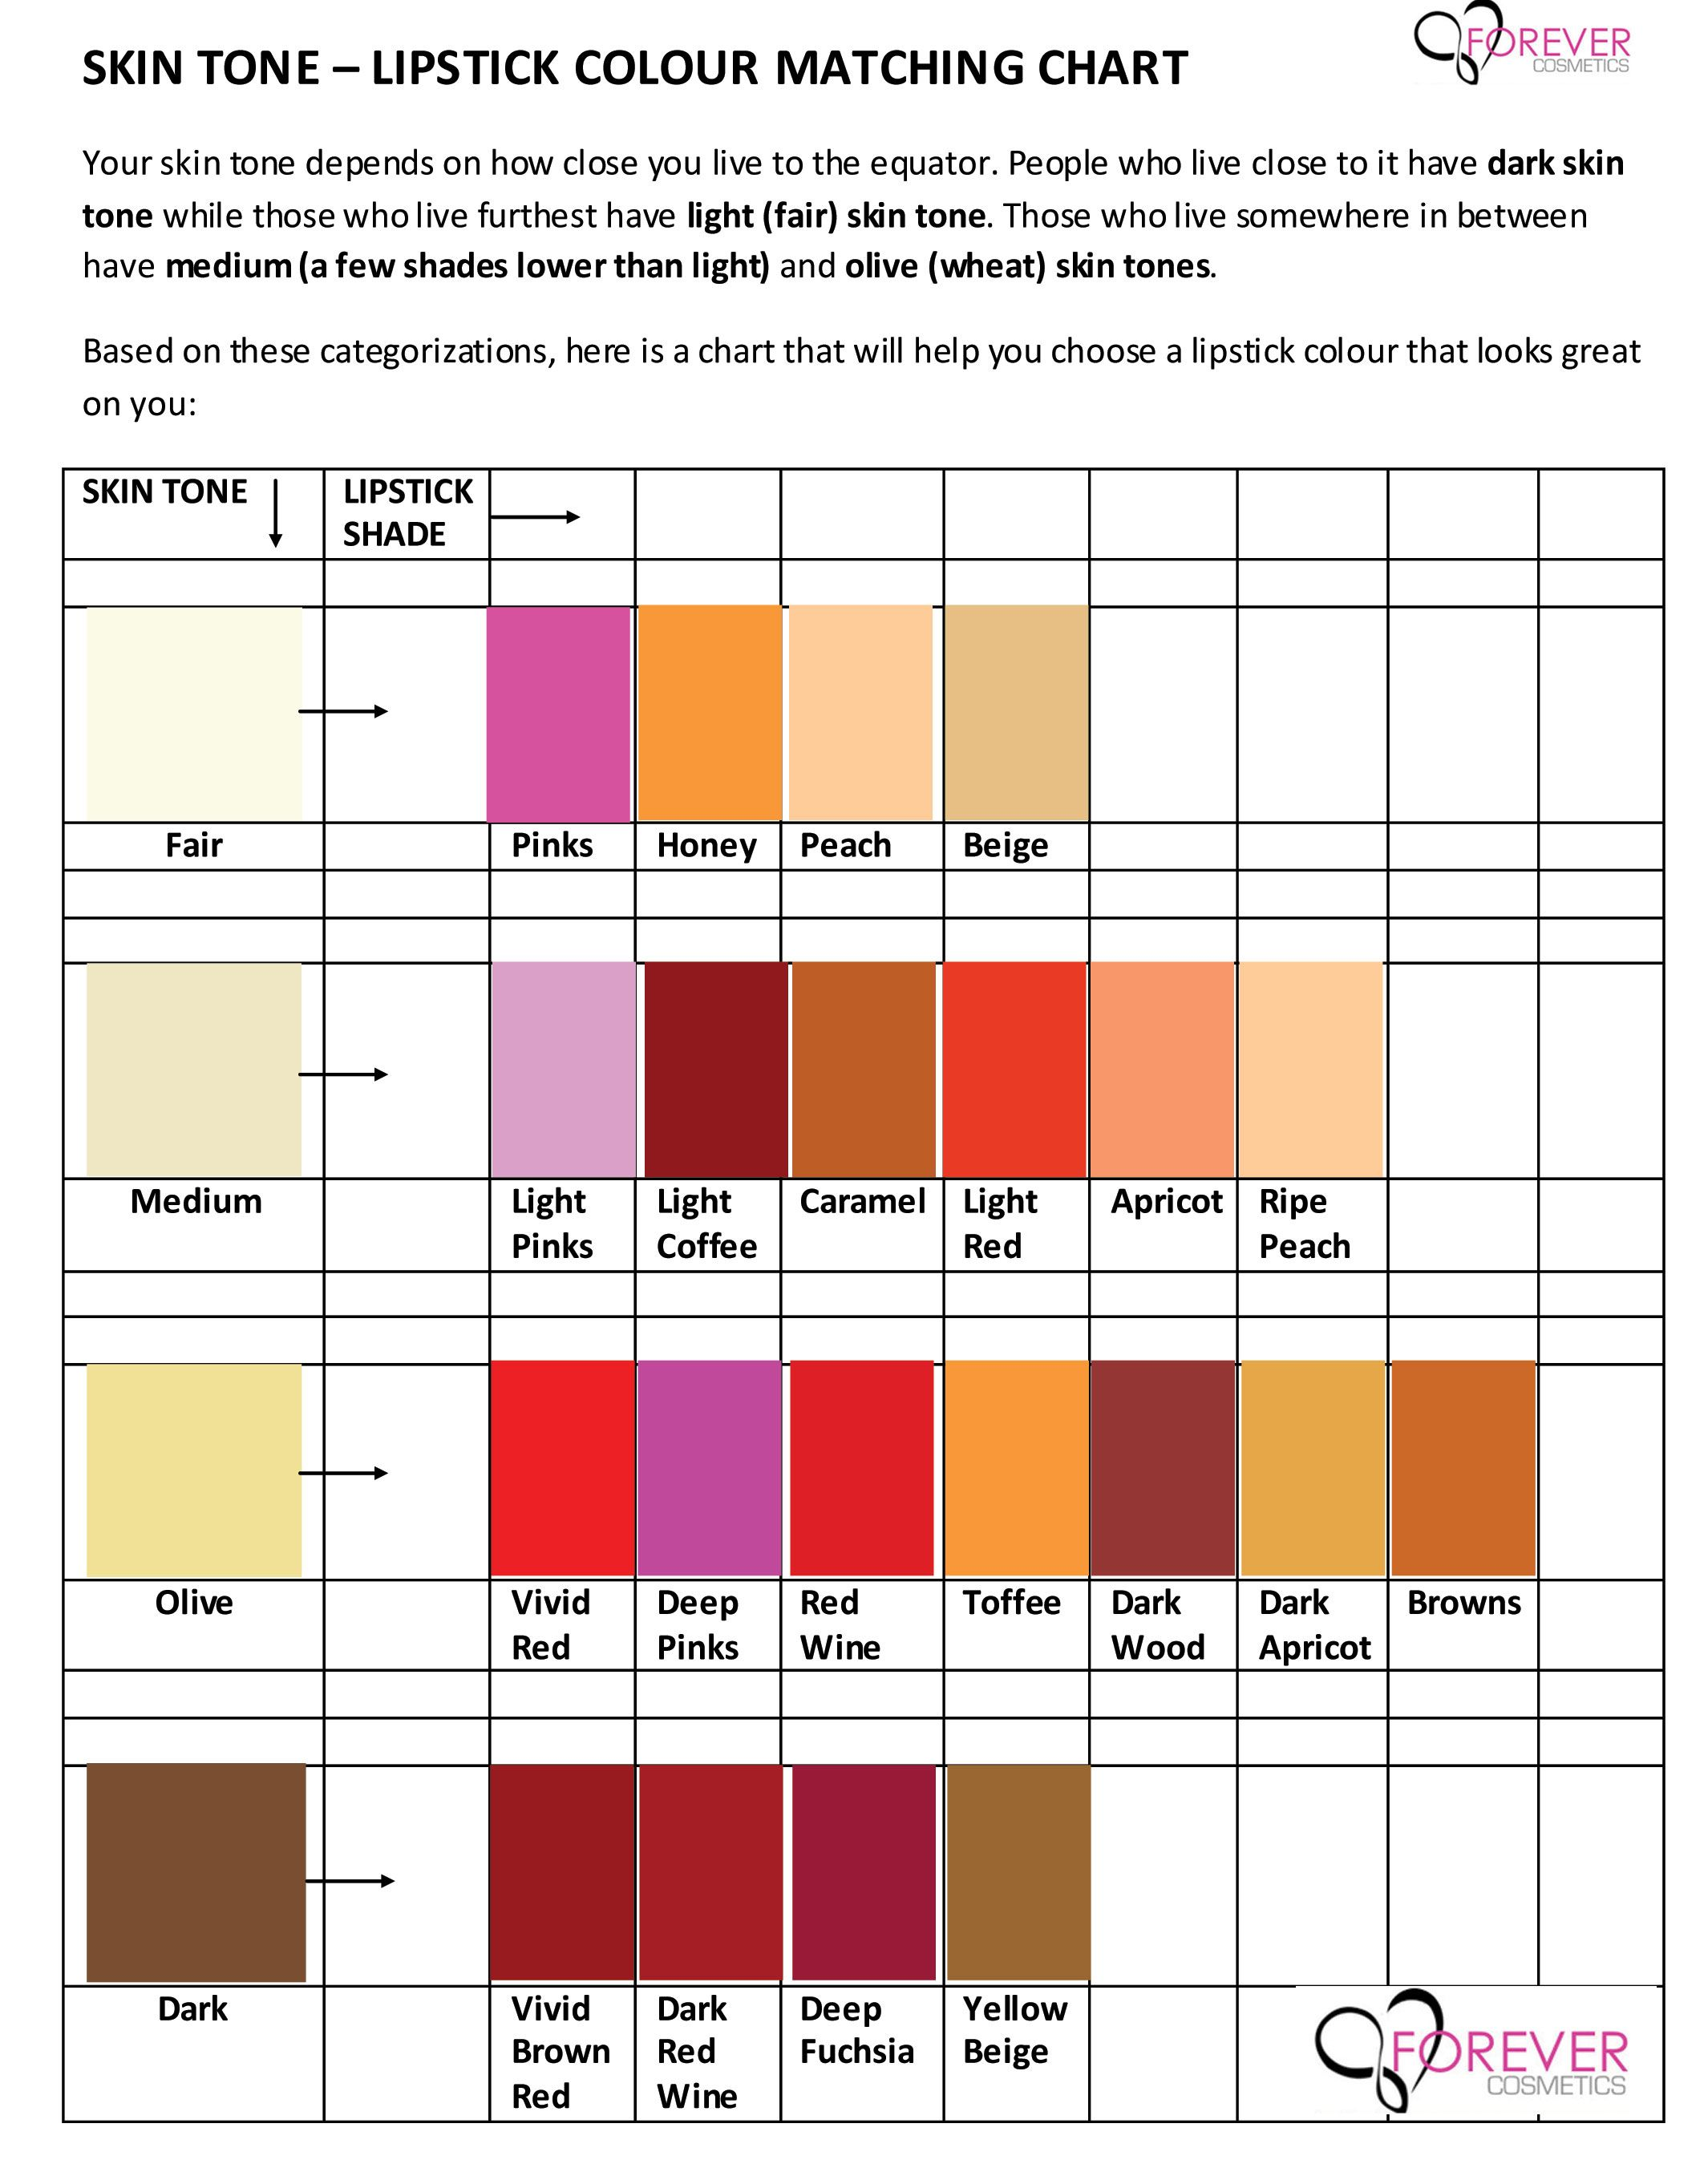 Skin Tone Lipstick Colour Matching Chart Your Skin Tone Depends On How Close You Live To The